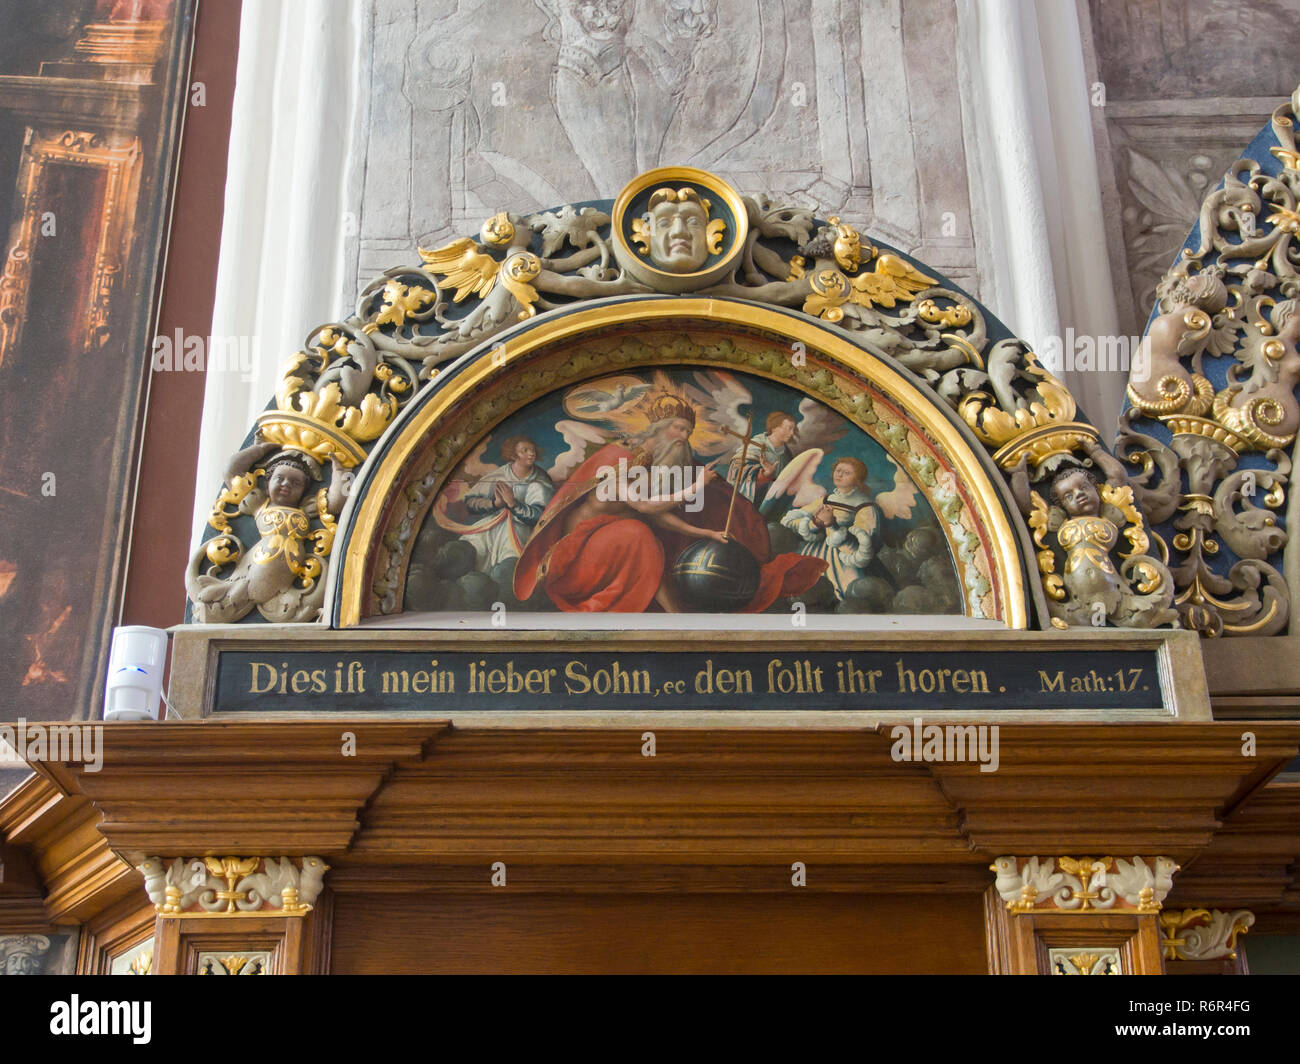 Artus Court museum in Gdansk Poland, a must see for tourists, interior view in the hall with painted and carved portal and New Testament quotation - Stock Image